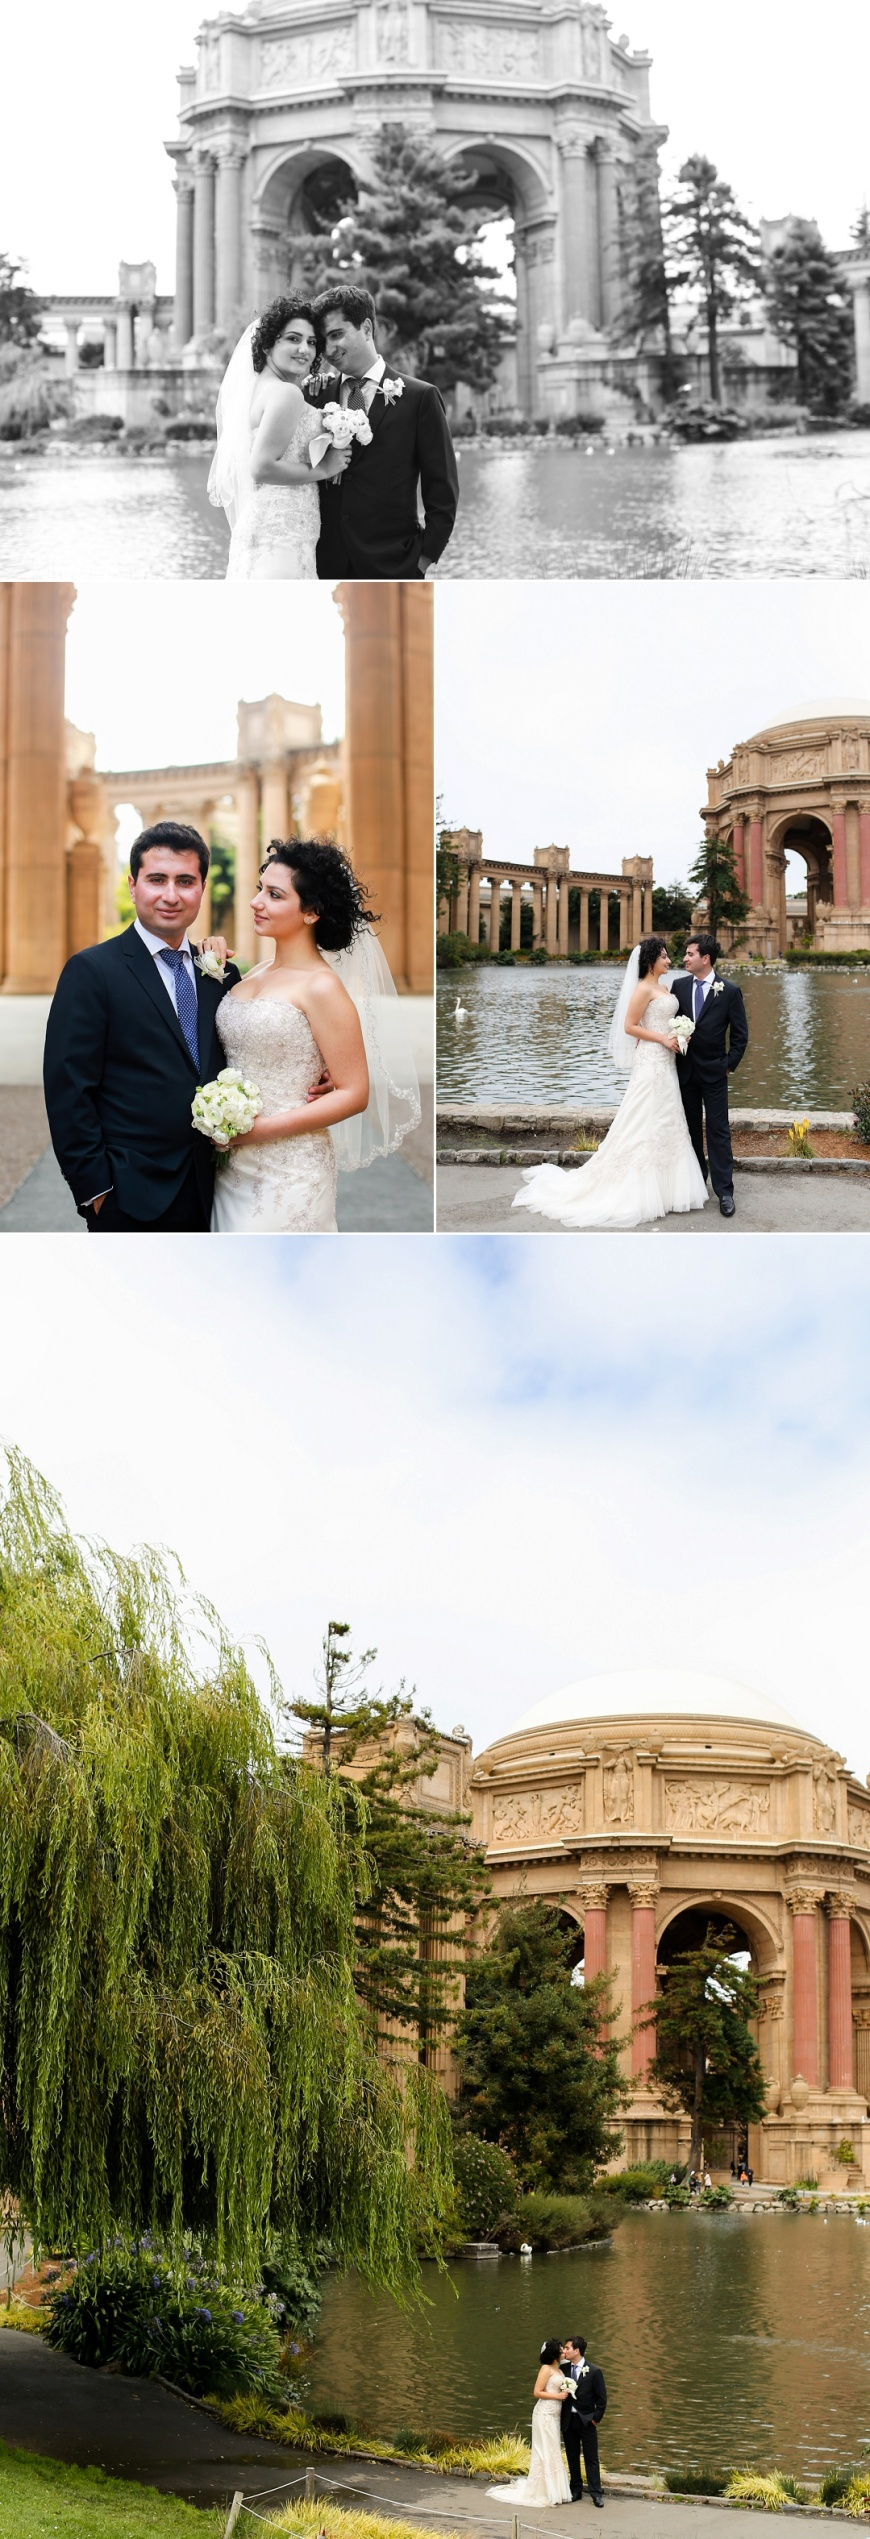 Palace of Fine Arts Wedding_1016.jpg